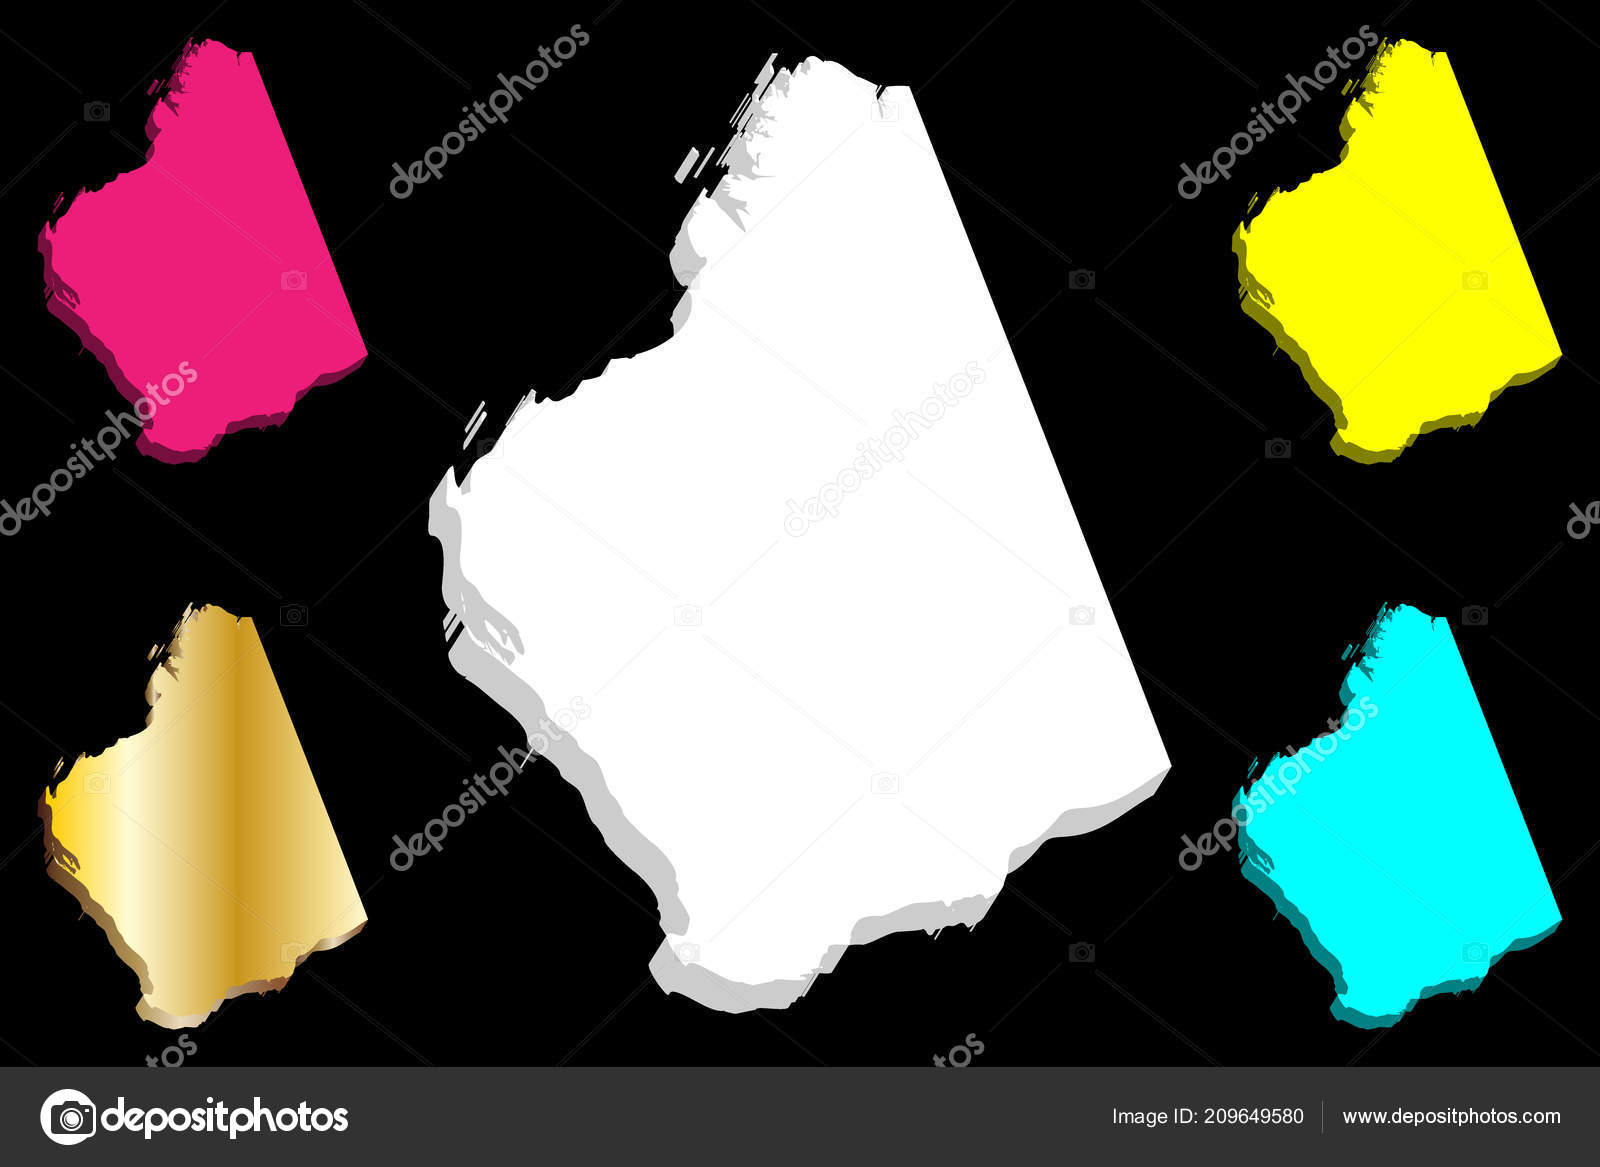 States And Territories Of Australia Map.Map Western Australia Australian States Territories White Yellow